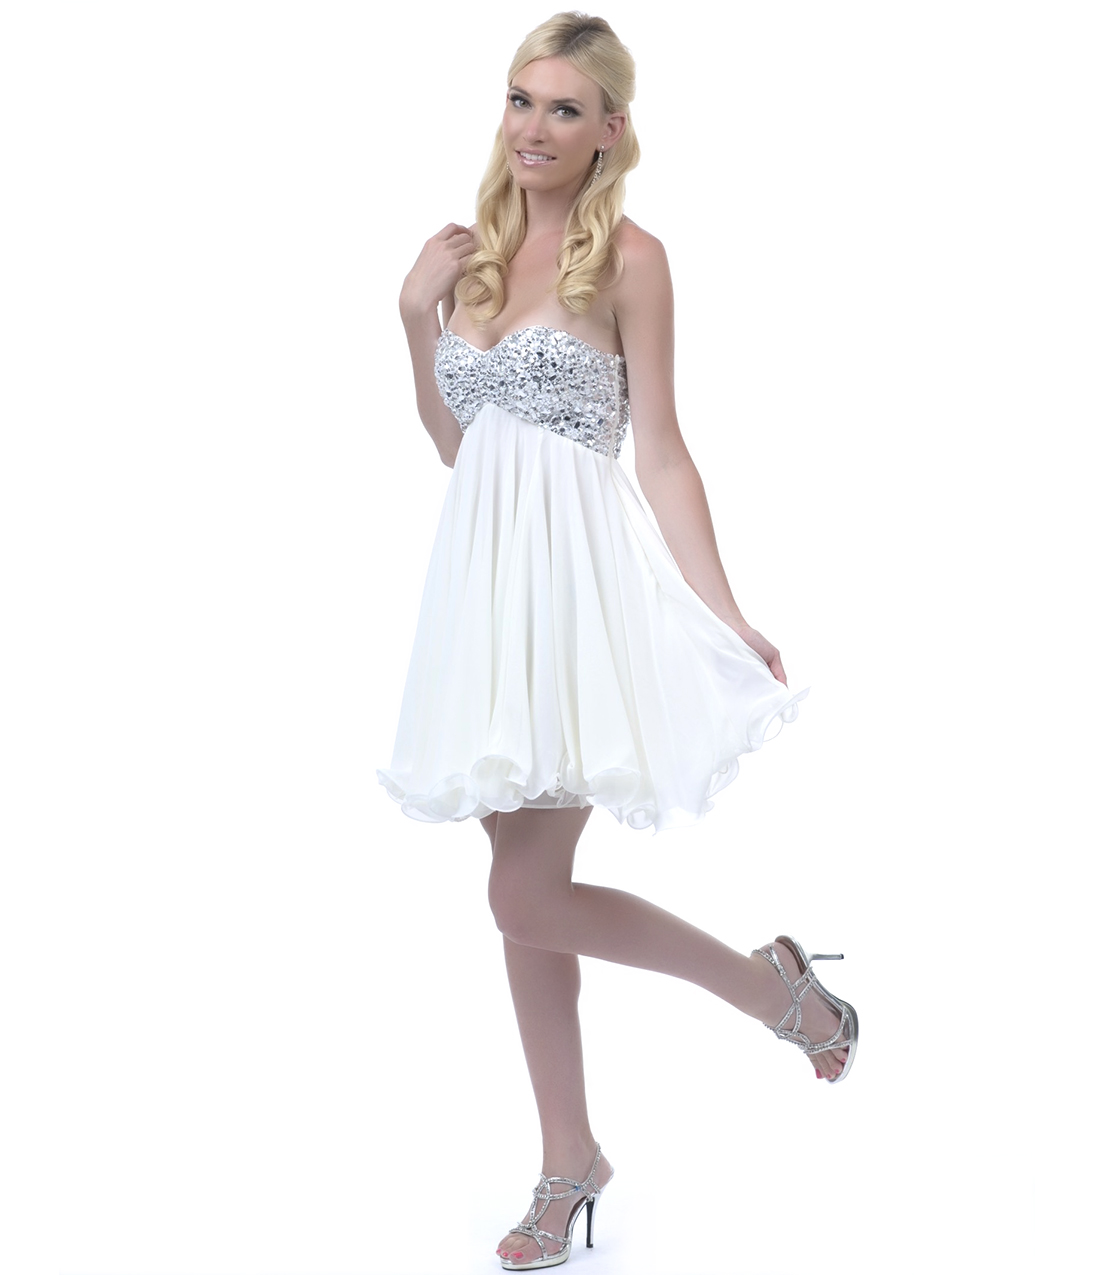 2013 Homecoming Dresses - Off White Sequin Beaded Strapless Short Homecoming Dress - Unique Vintage - Prom dresses, retro dresses, retro swimsuits.